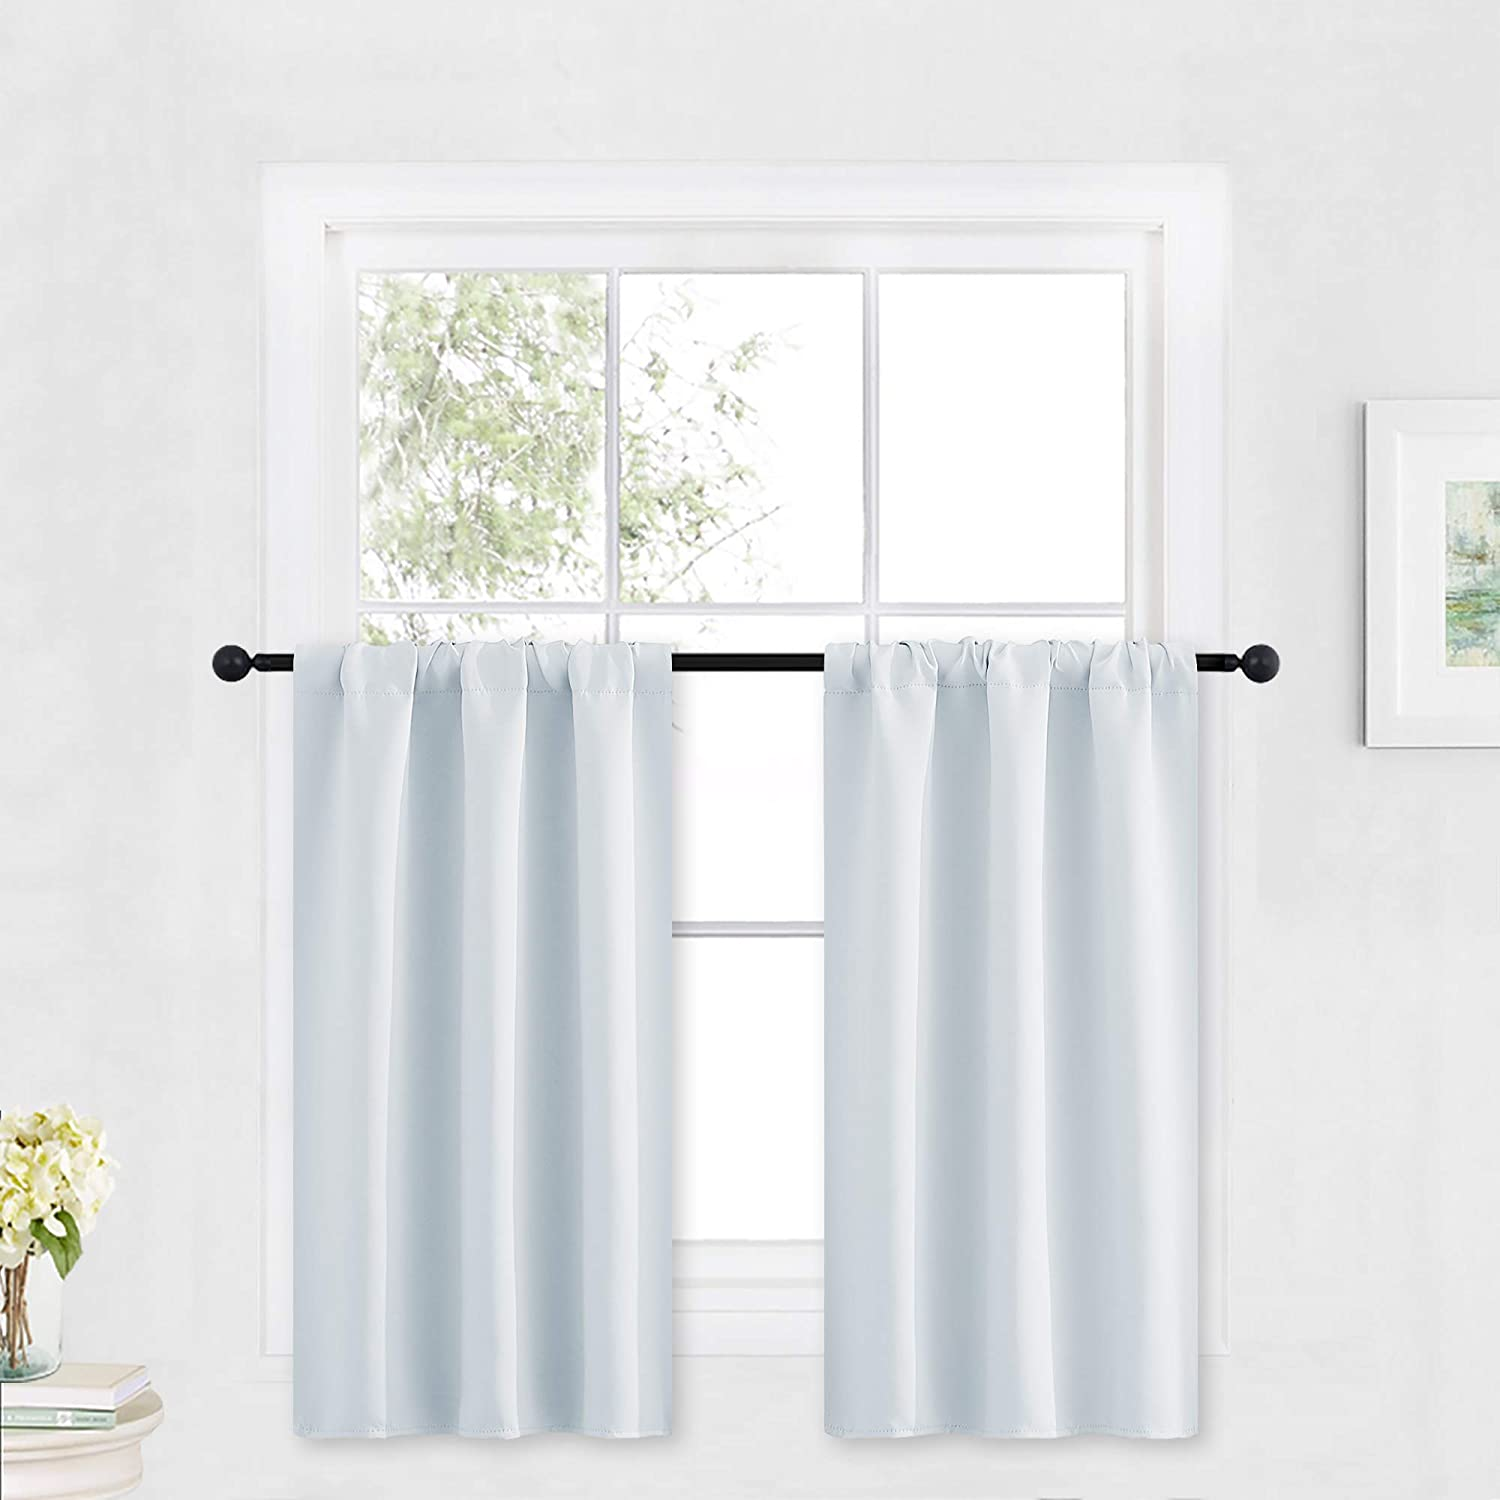 RYB HOME White Curtains for Bedroom - Room Darkening Curtains Thermal Insulated Sunlight Block for Kitchen Cabinet Basement Bathroom Window Covering, W 29 x L 36, Grayish White, 2 Panels